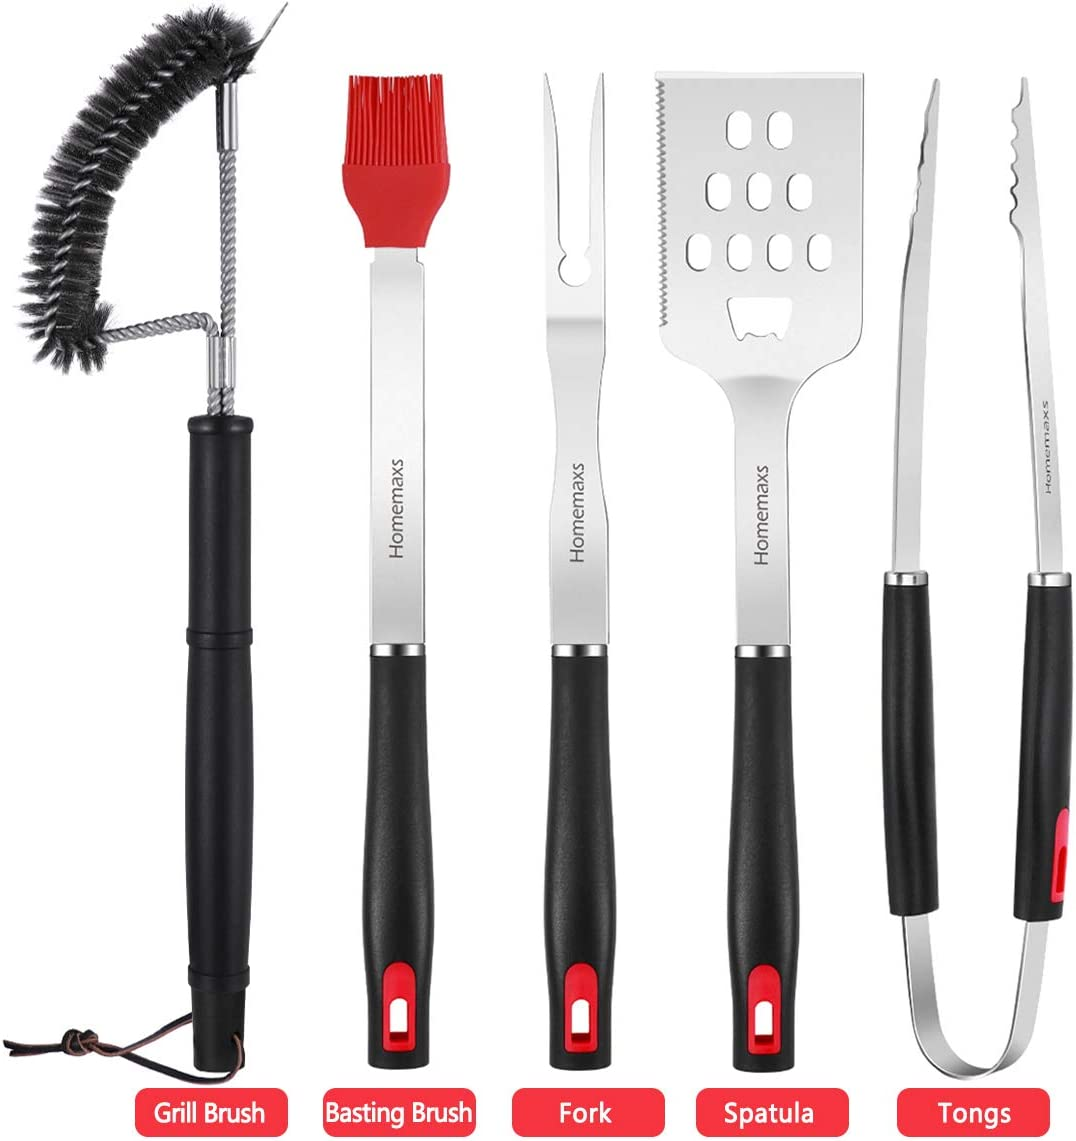 HOMENOTE Griddle Accessories, 11-Pieces Premium Flat Top Grill Tools Set with Spatulas Holder Stand- Great for Outdoor BBQ, Hibachi and Camping